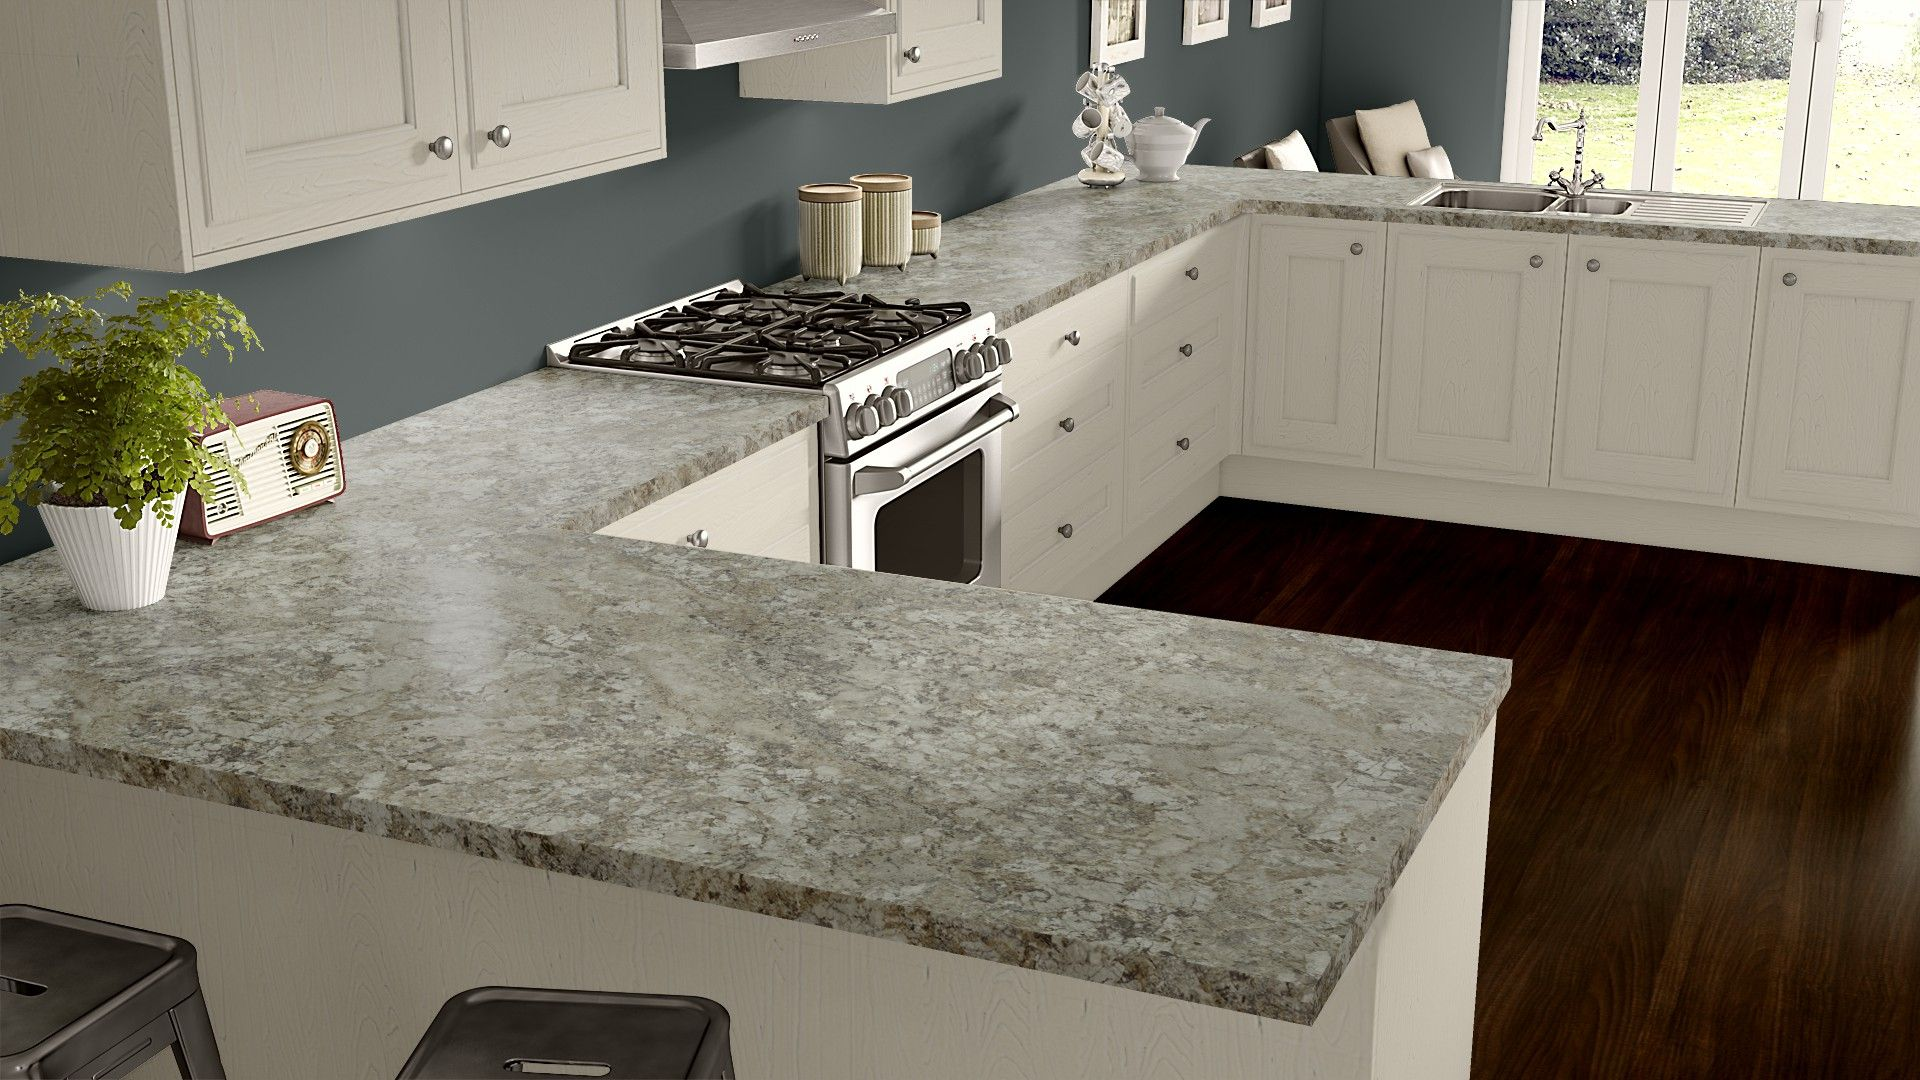 Get inspired for your kitchen renovation with Wilsonart's